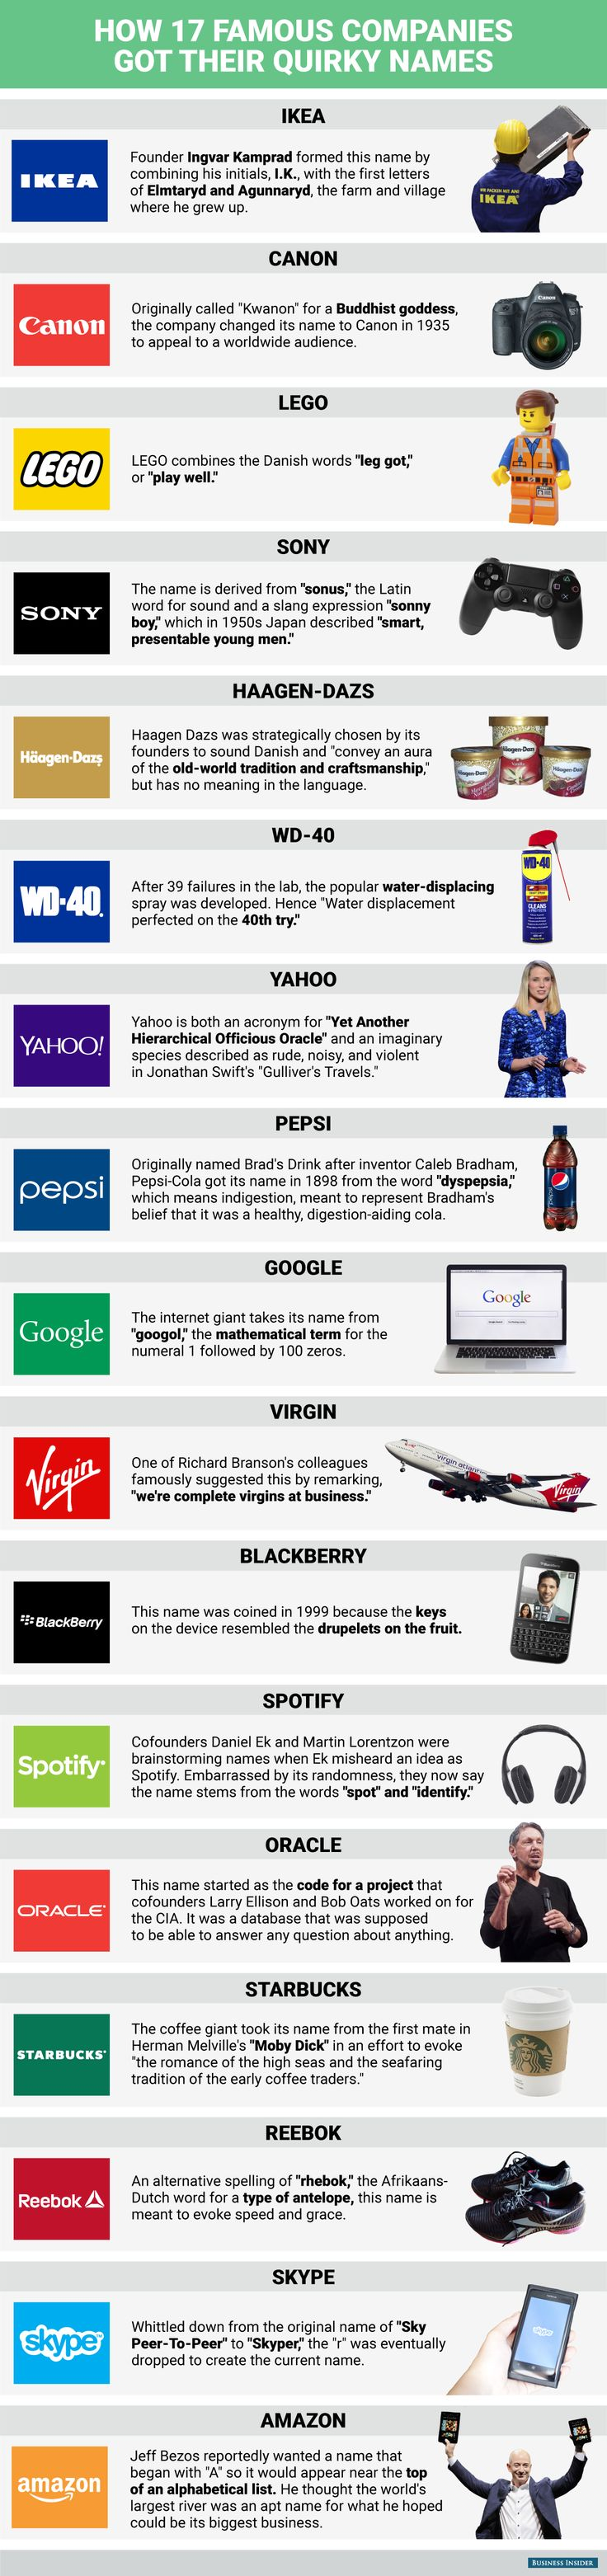 How 17 famous companies got their quirky names